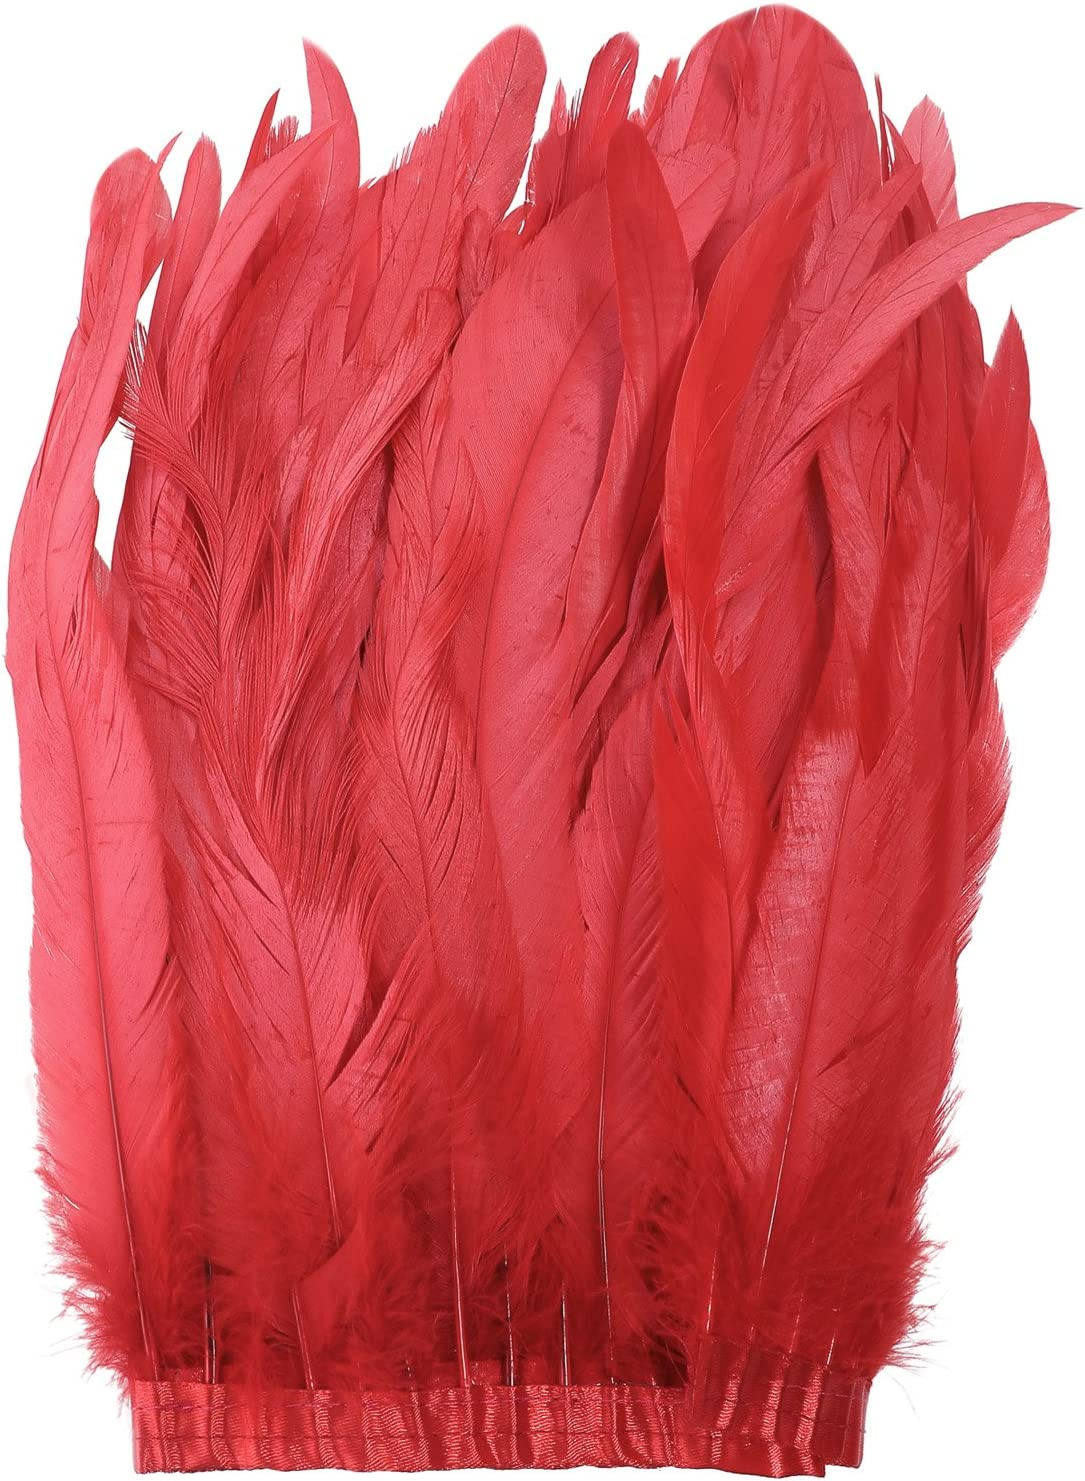 Burgundy BRONZE Rooster Coque Feather Fringe Ribbon Trim DIY Price for 30cm